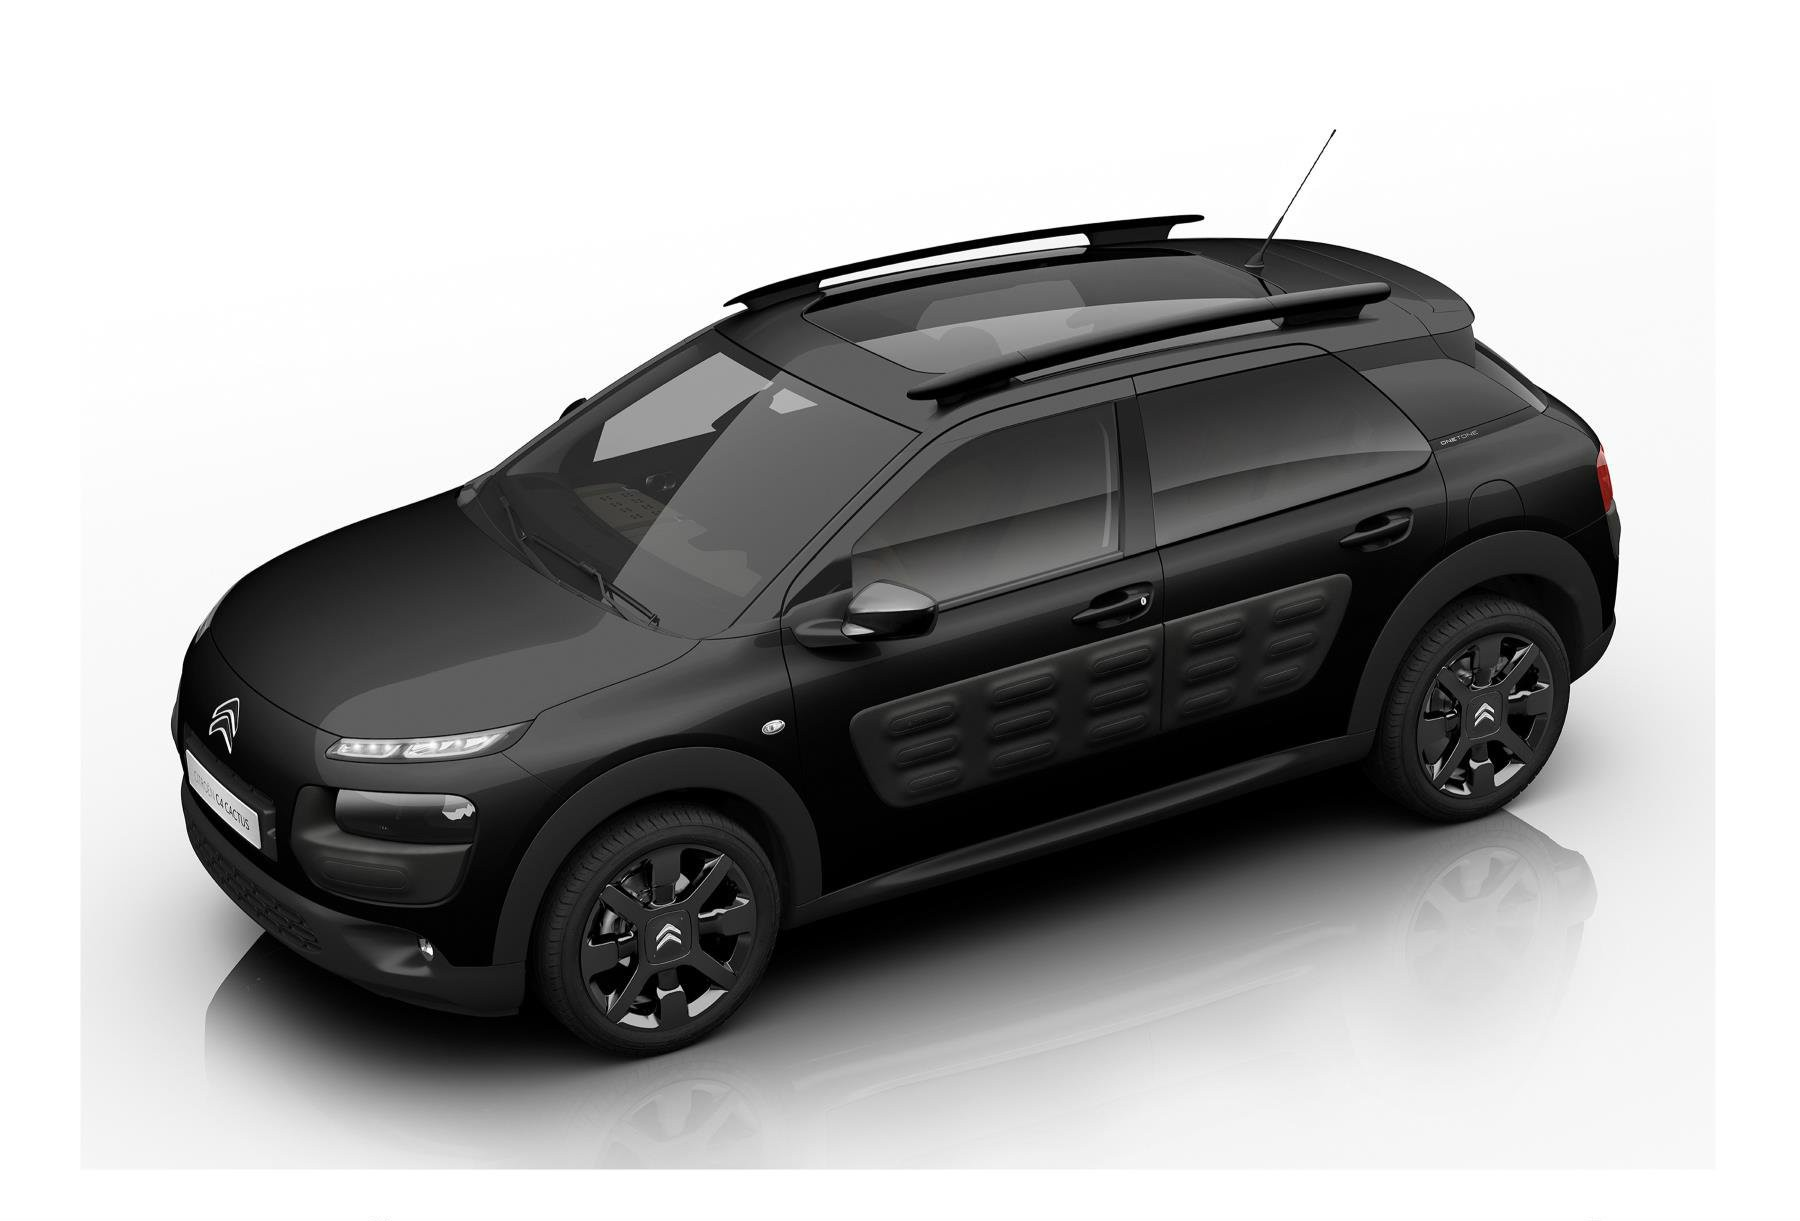 citroen enhances c4 cactus range with onetone version autoevolution. Black Bedroom Furniture Sets. Home Design Ideas